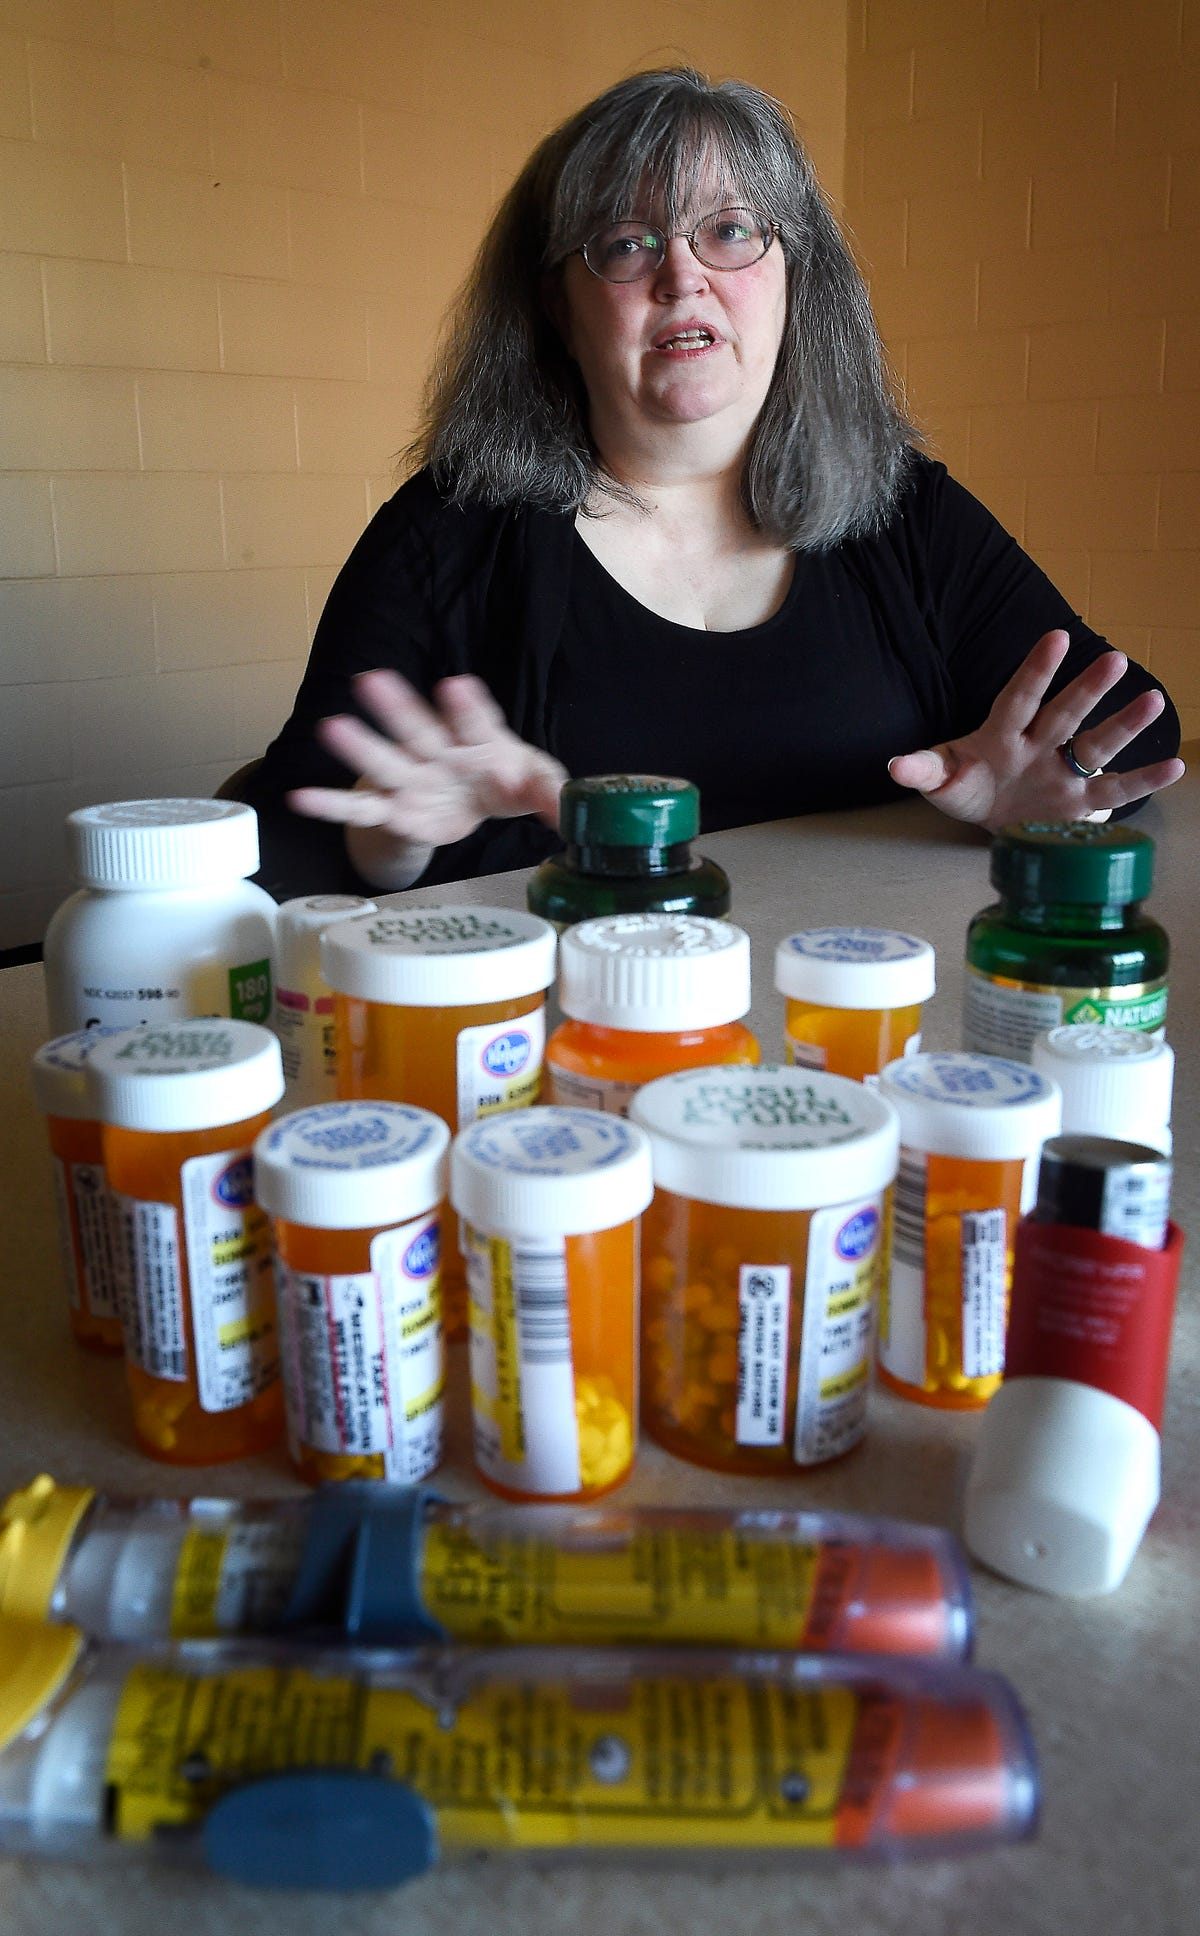 Amid Opioid Epidemic States Experiment With Recovery High >> Chronic Pain Sufferers Feel Stigma Amid Opioid Crackdown